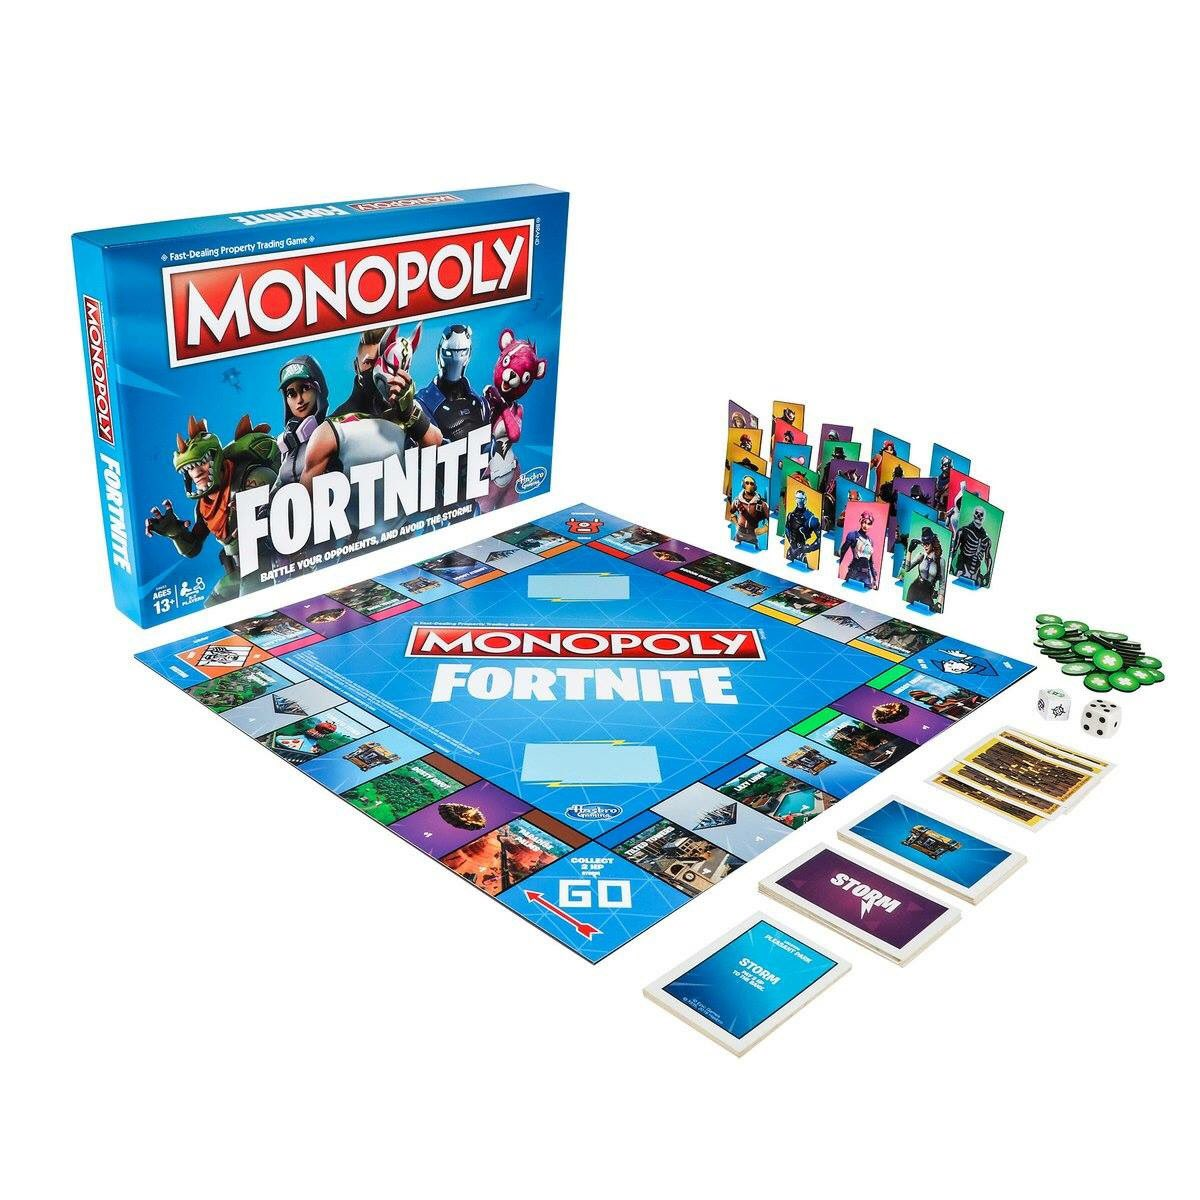 The Battle Royale Aspect Is Whoever Can Stand Playing Monopoly The